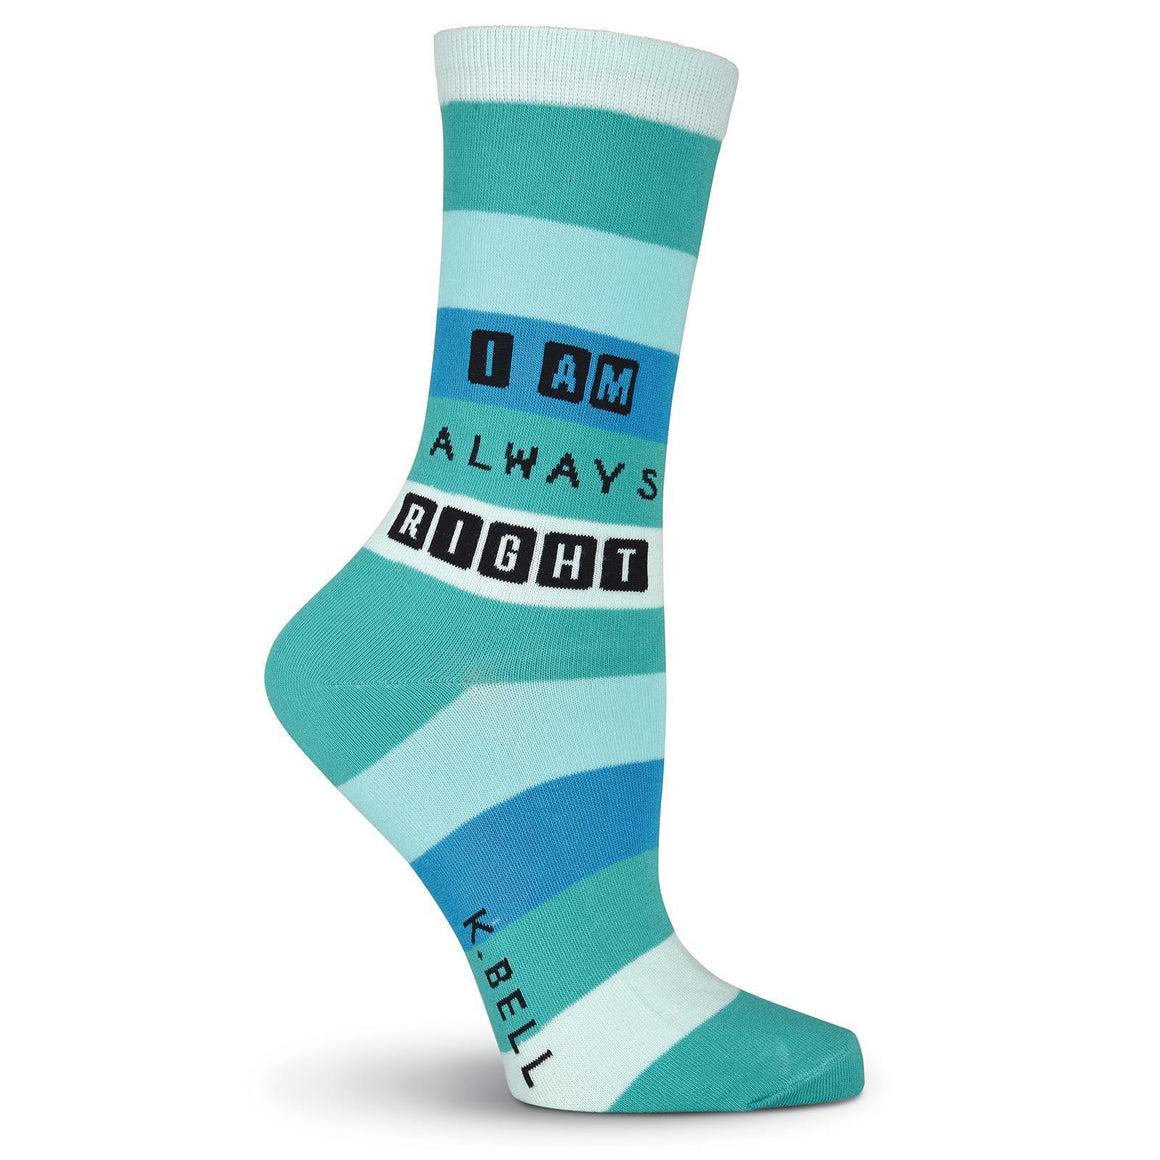 I Am Always Right Crew Socks - XEJRA